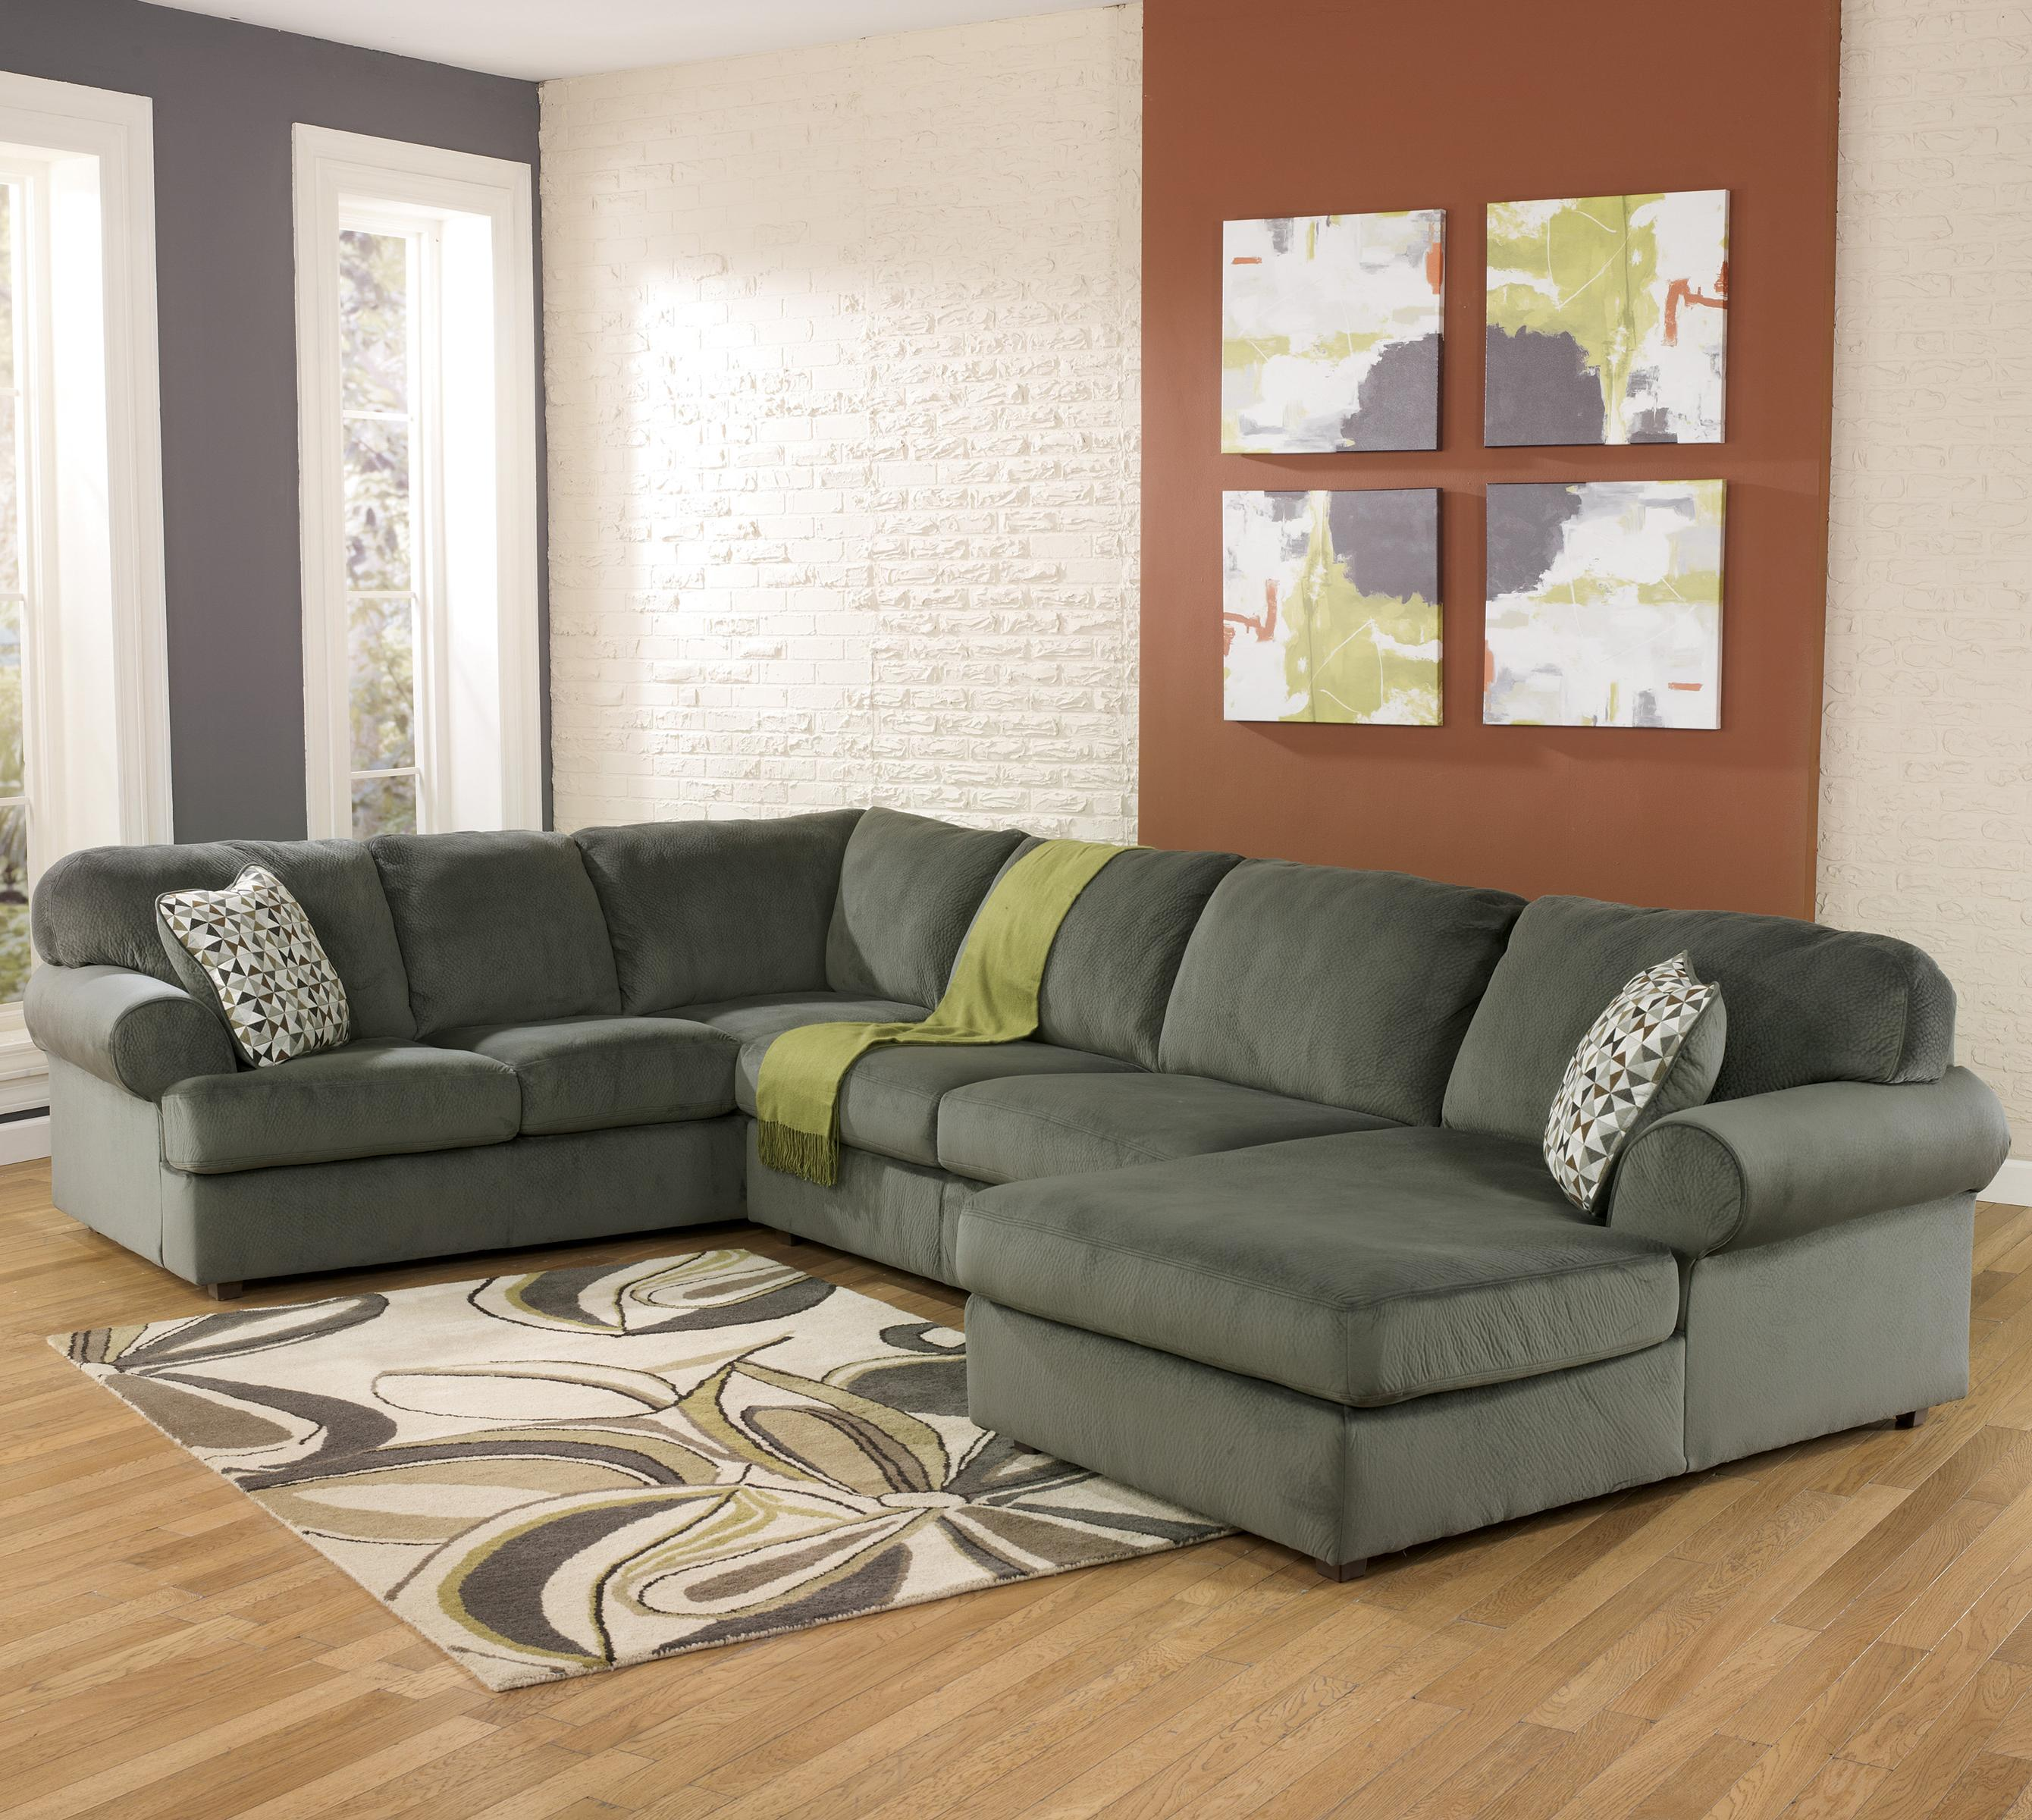 Casual Sectional Sofa with Right Chaise : sectional sofa stores - Sectionals, Sofas & Couches